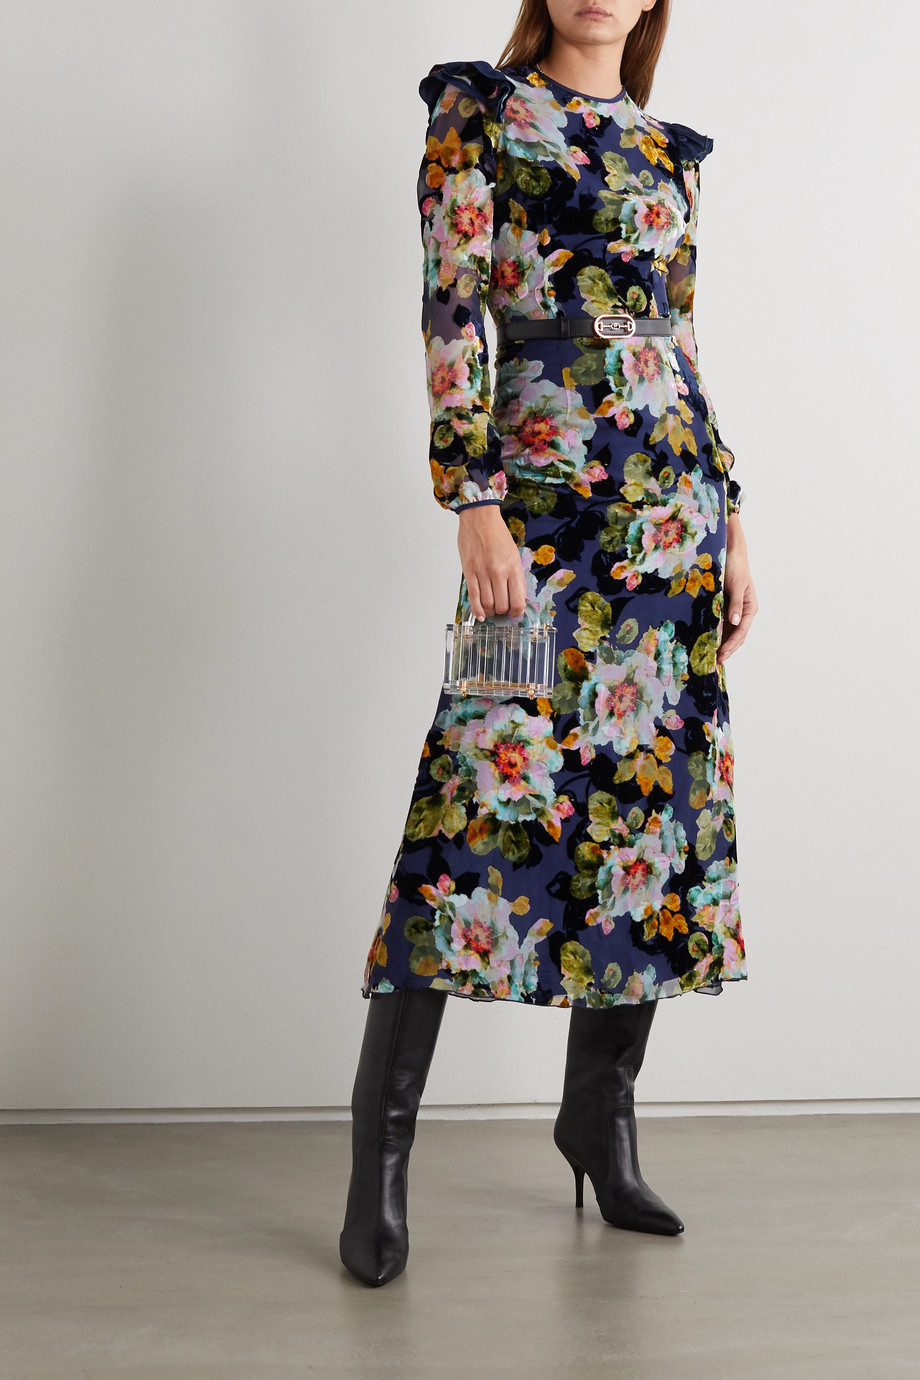 Rodarte Ruffled floral-print devoré-chiffon midi dress